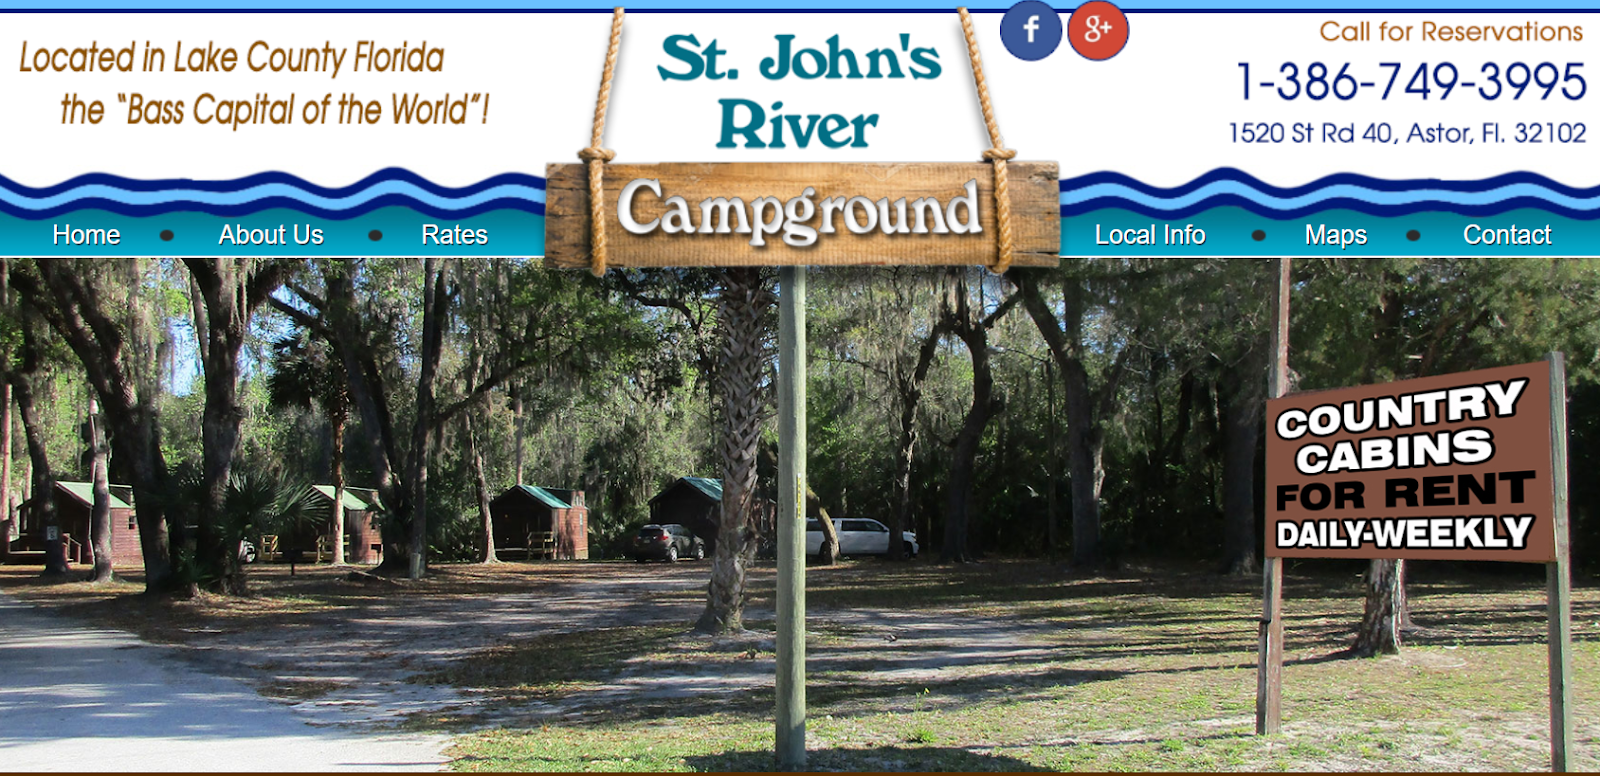 St. Johns River Campground